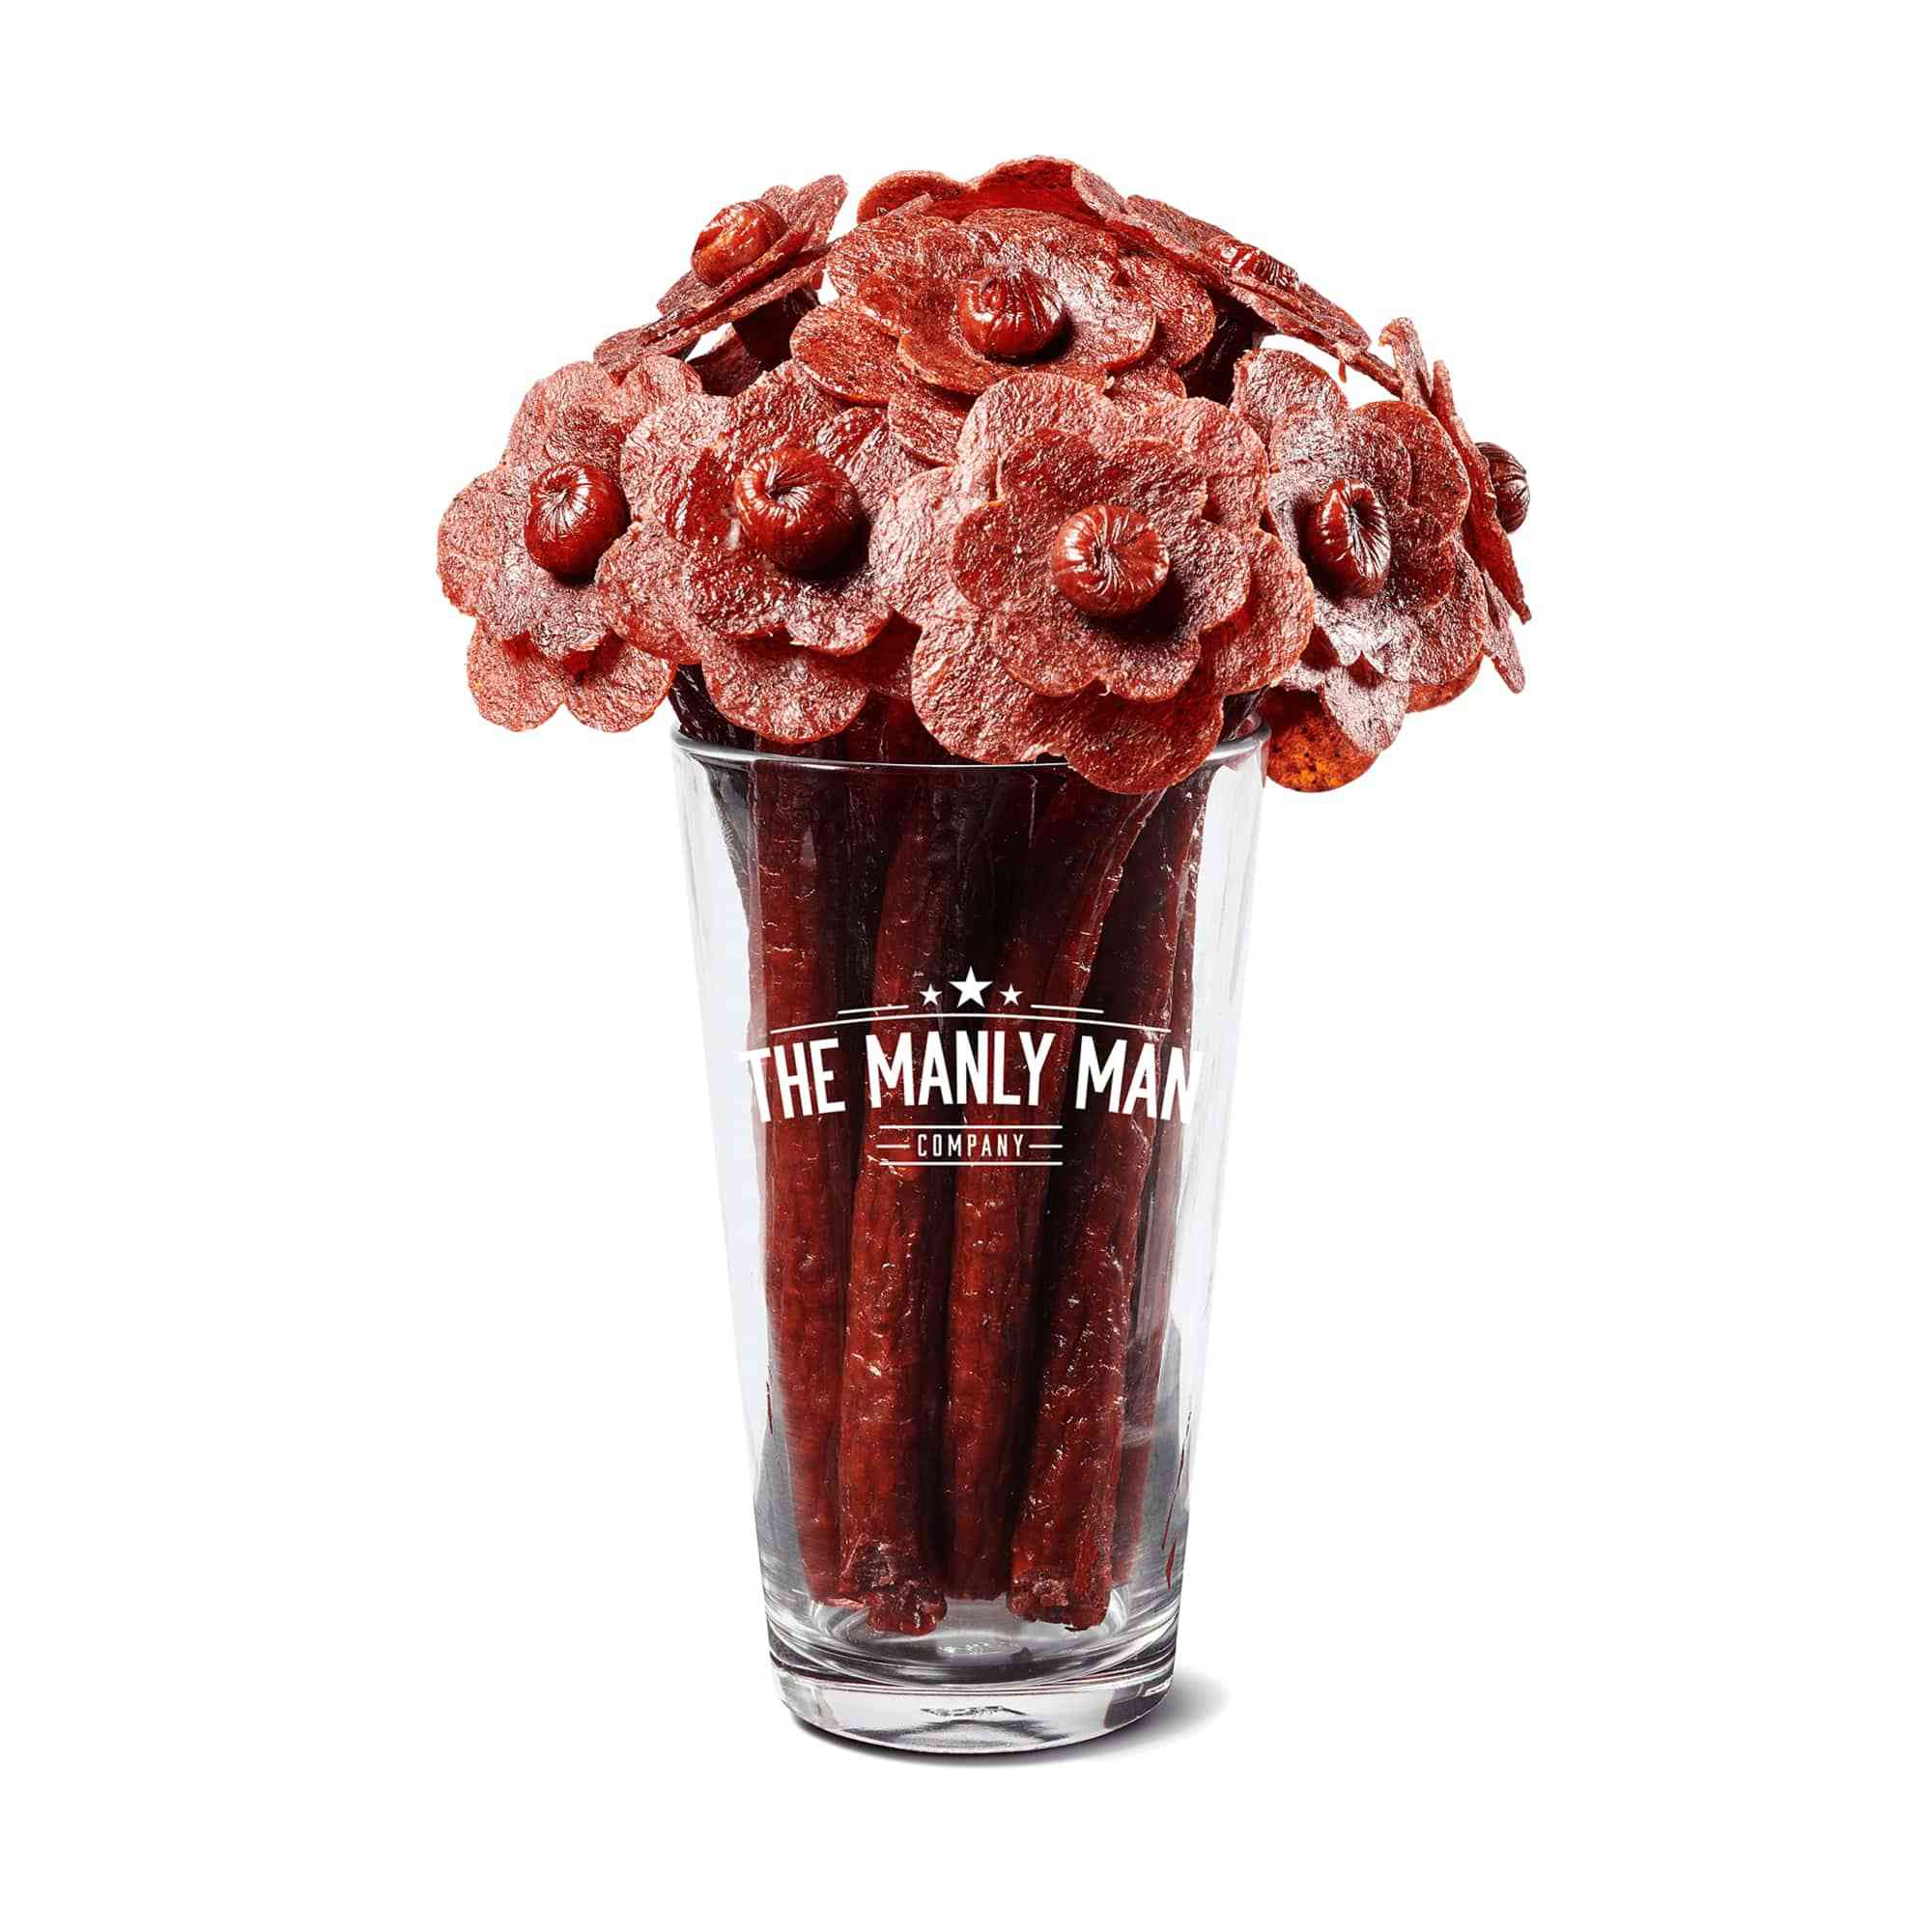 the-manly-man-company-beef-jerky-bouquet